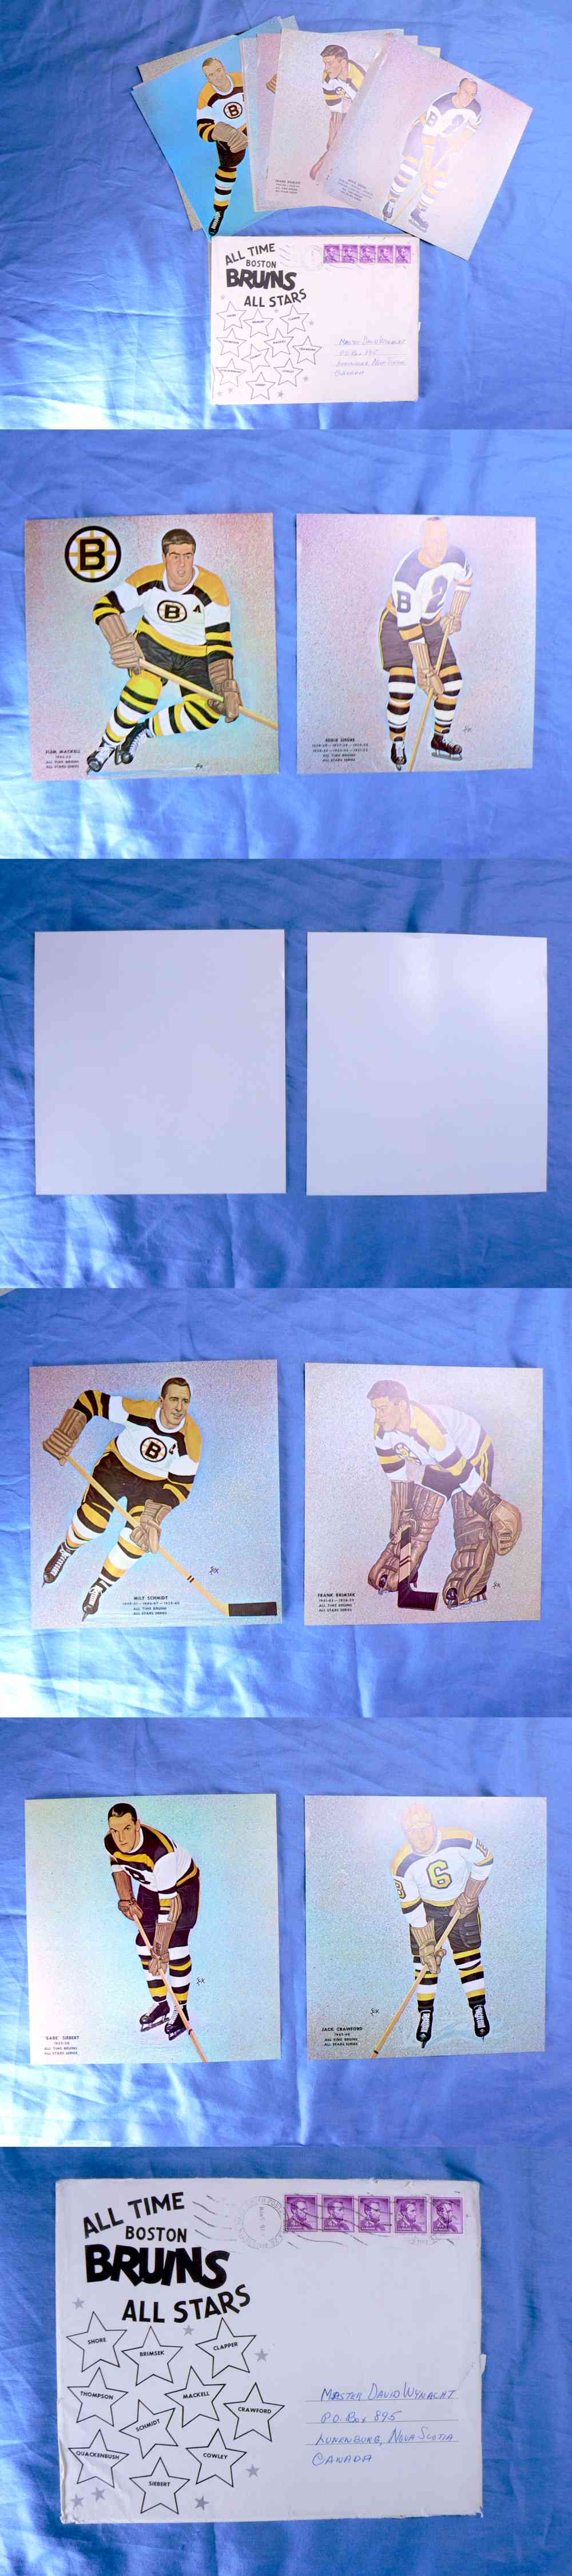 1961-62 BOSTON BRUINS ALL STARS ALL TIME FULL TEAM SET PHOTO 10/10 & ENVELOPE photo